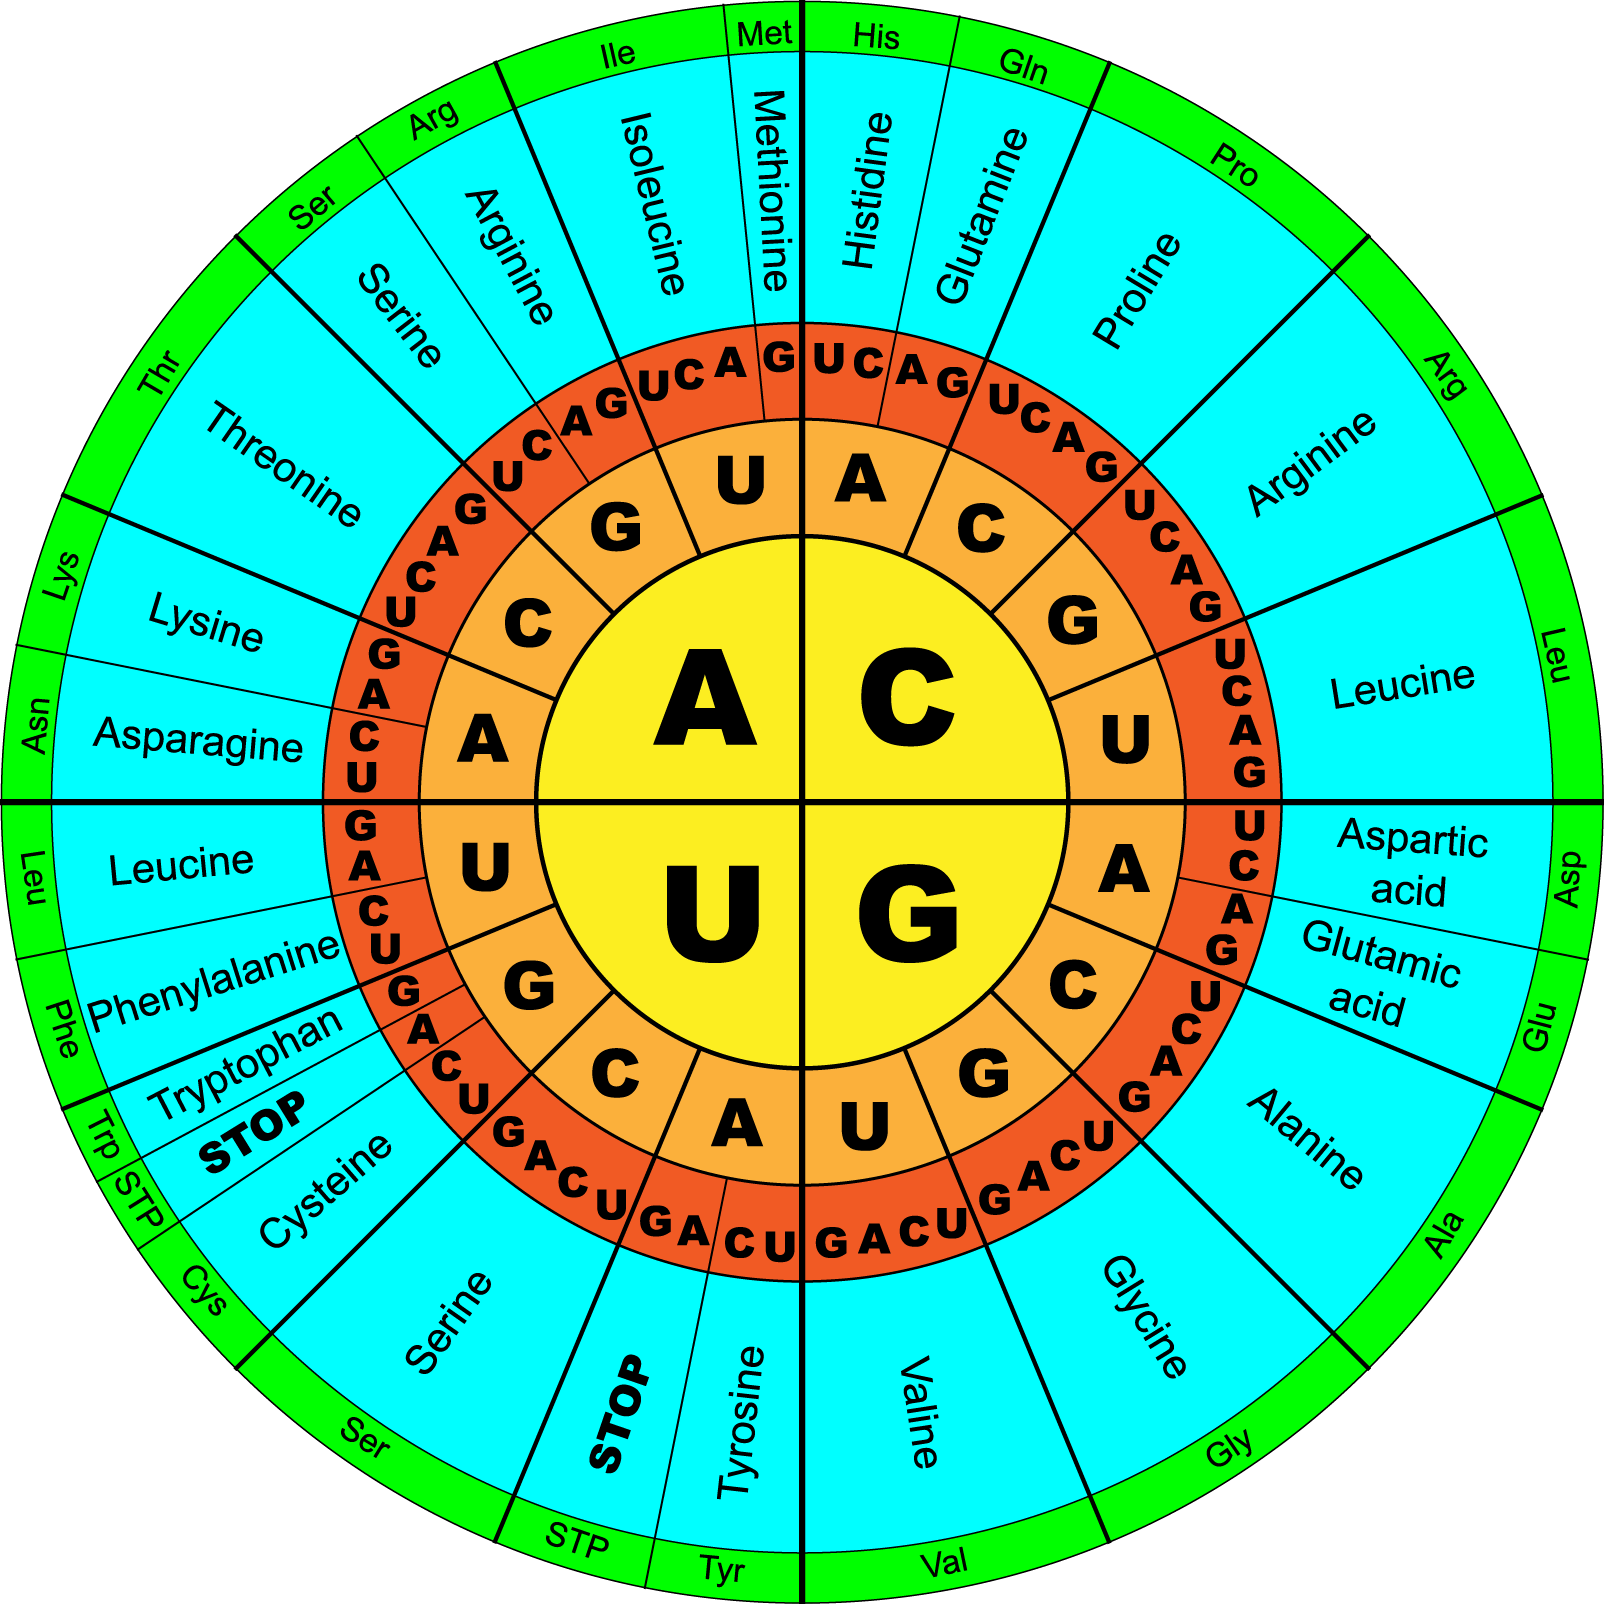 genetic-code.circular, colored